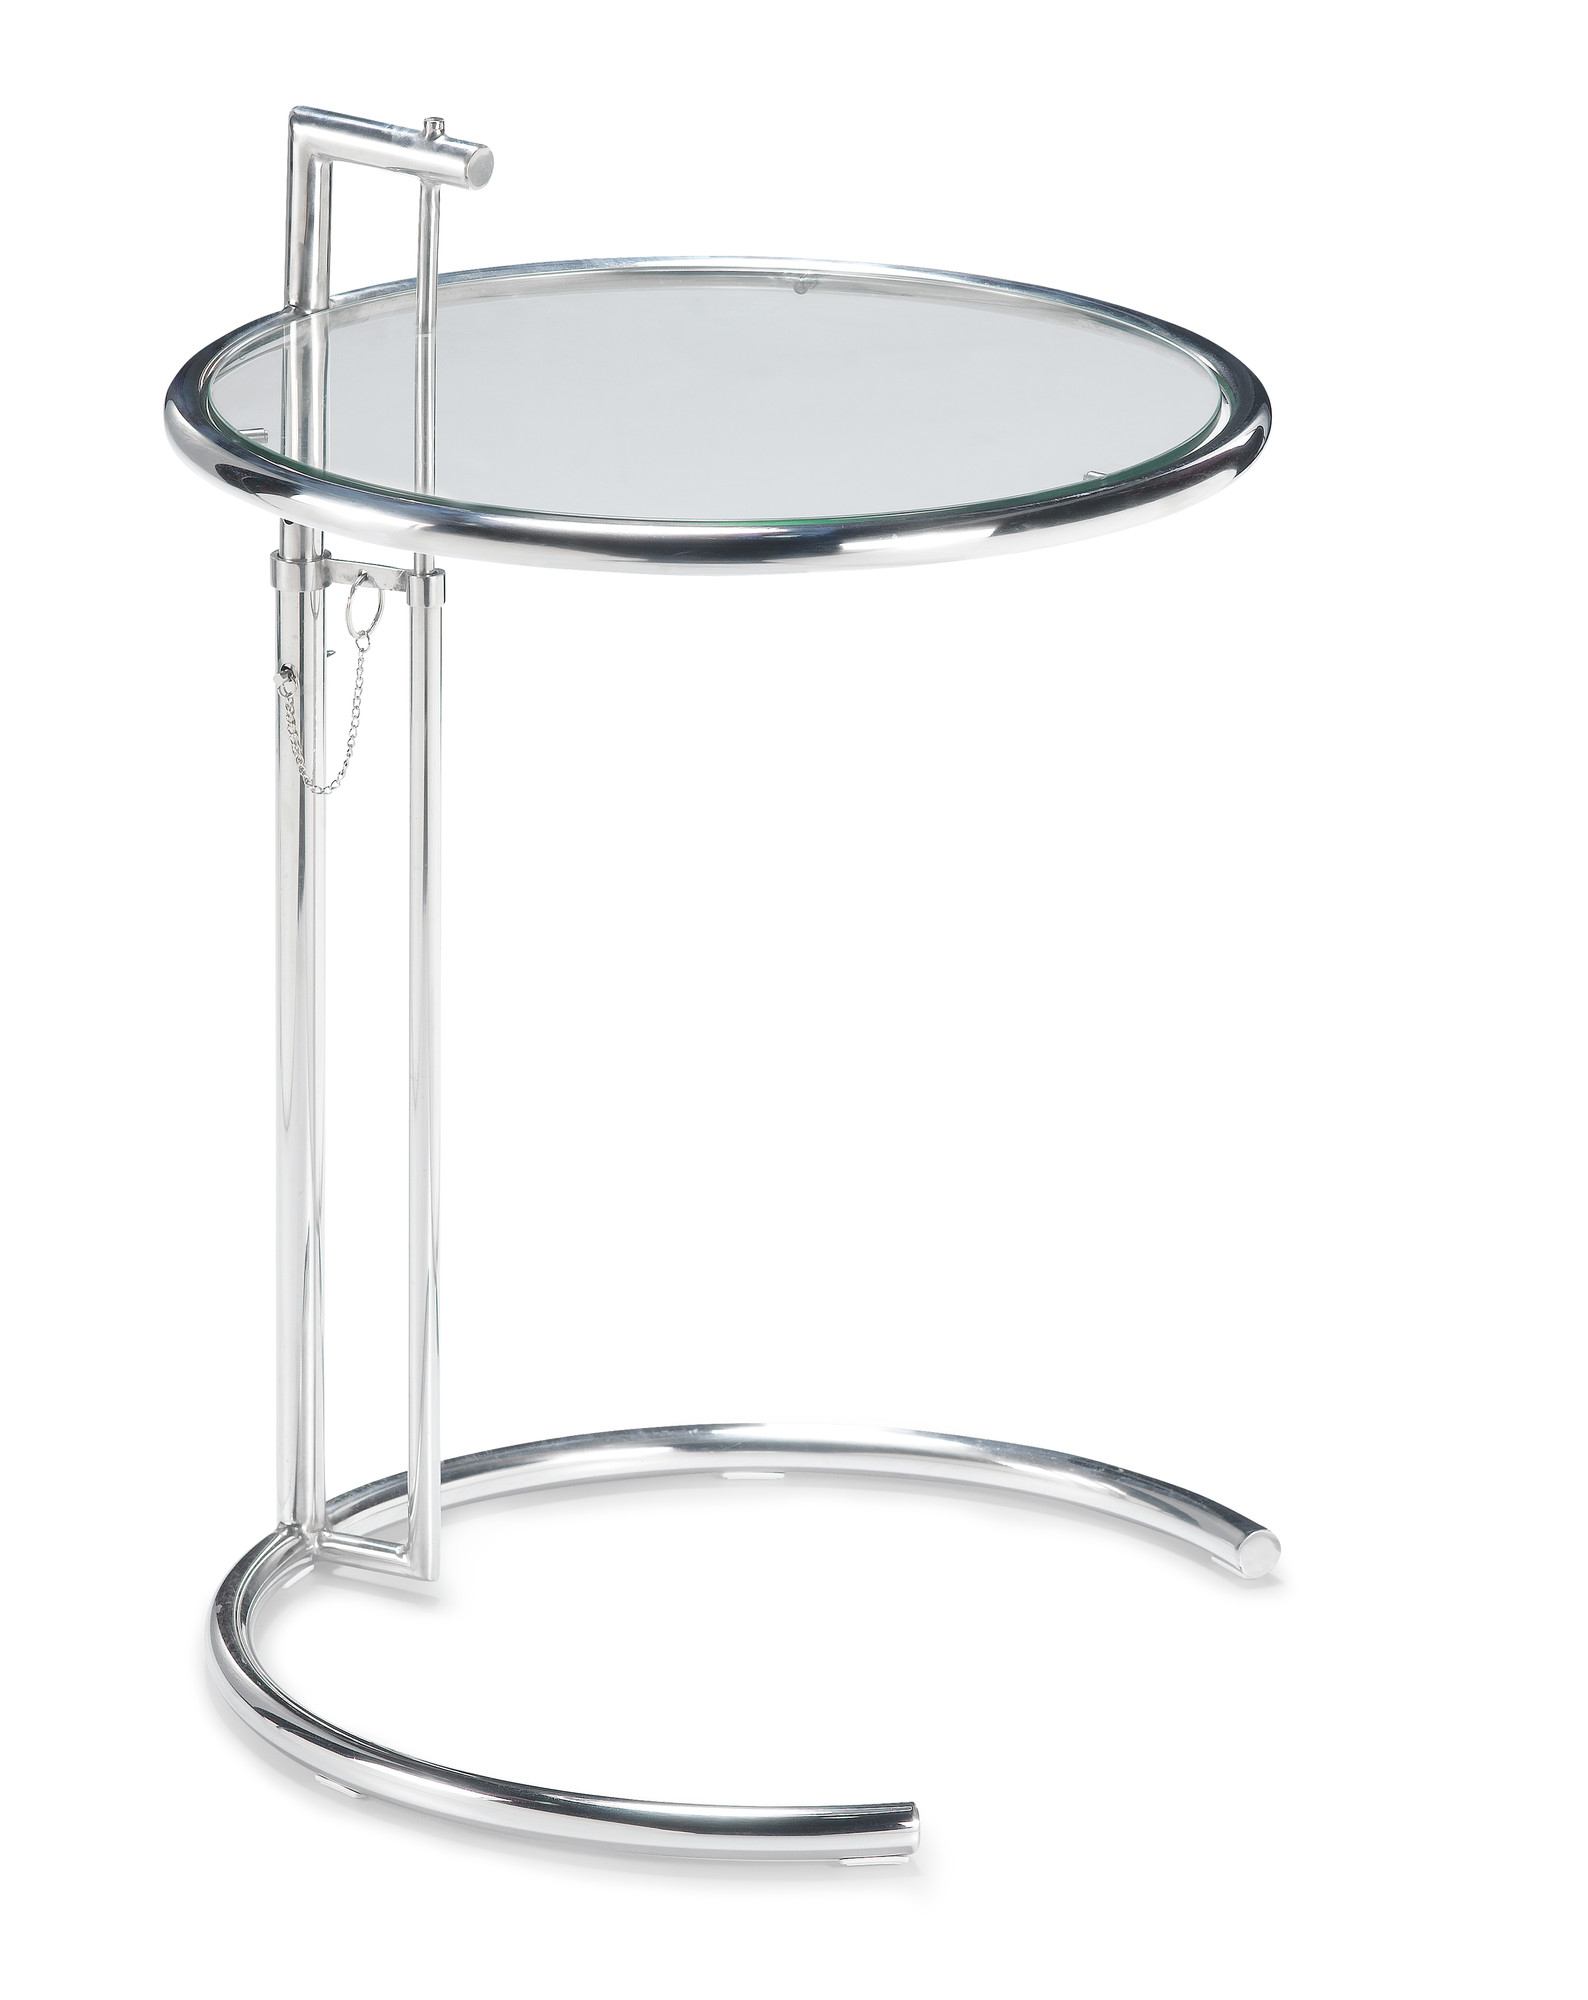 Eileen Gray Tisch Tisch Eileen Gray Image Of Eileen Gray Table Ideas With Tisch